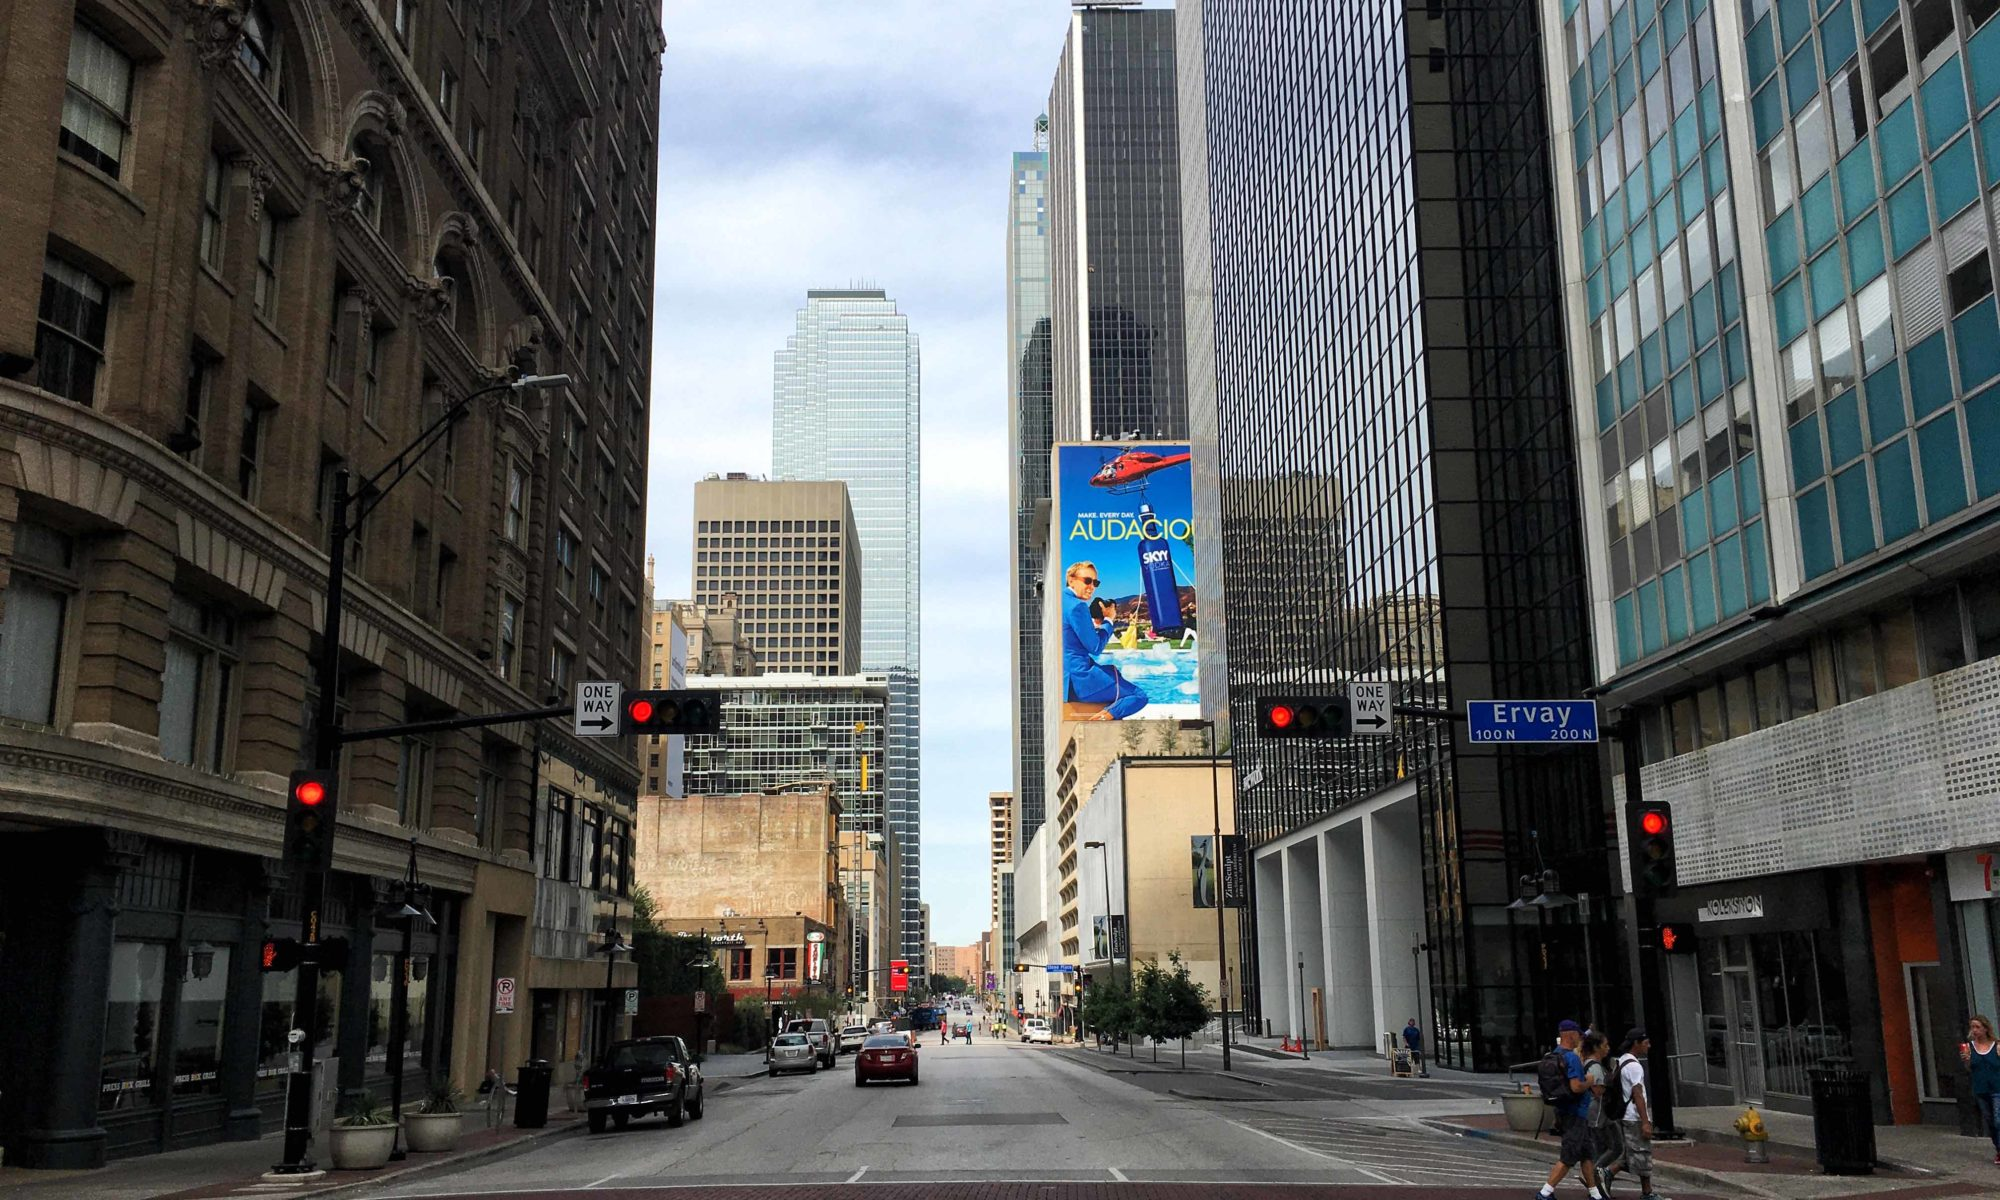 Downtown Dallas, TX - © TsWISsTER